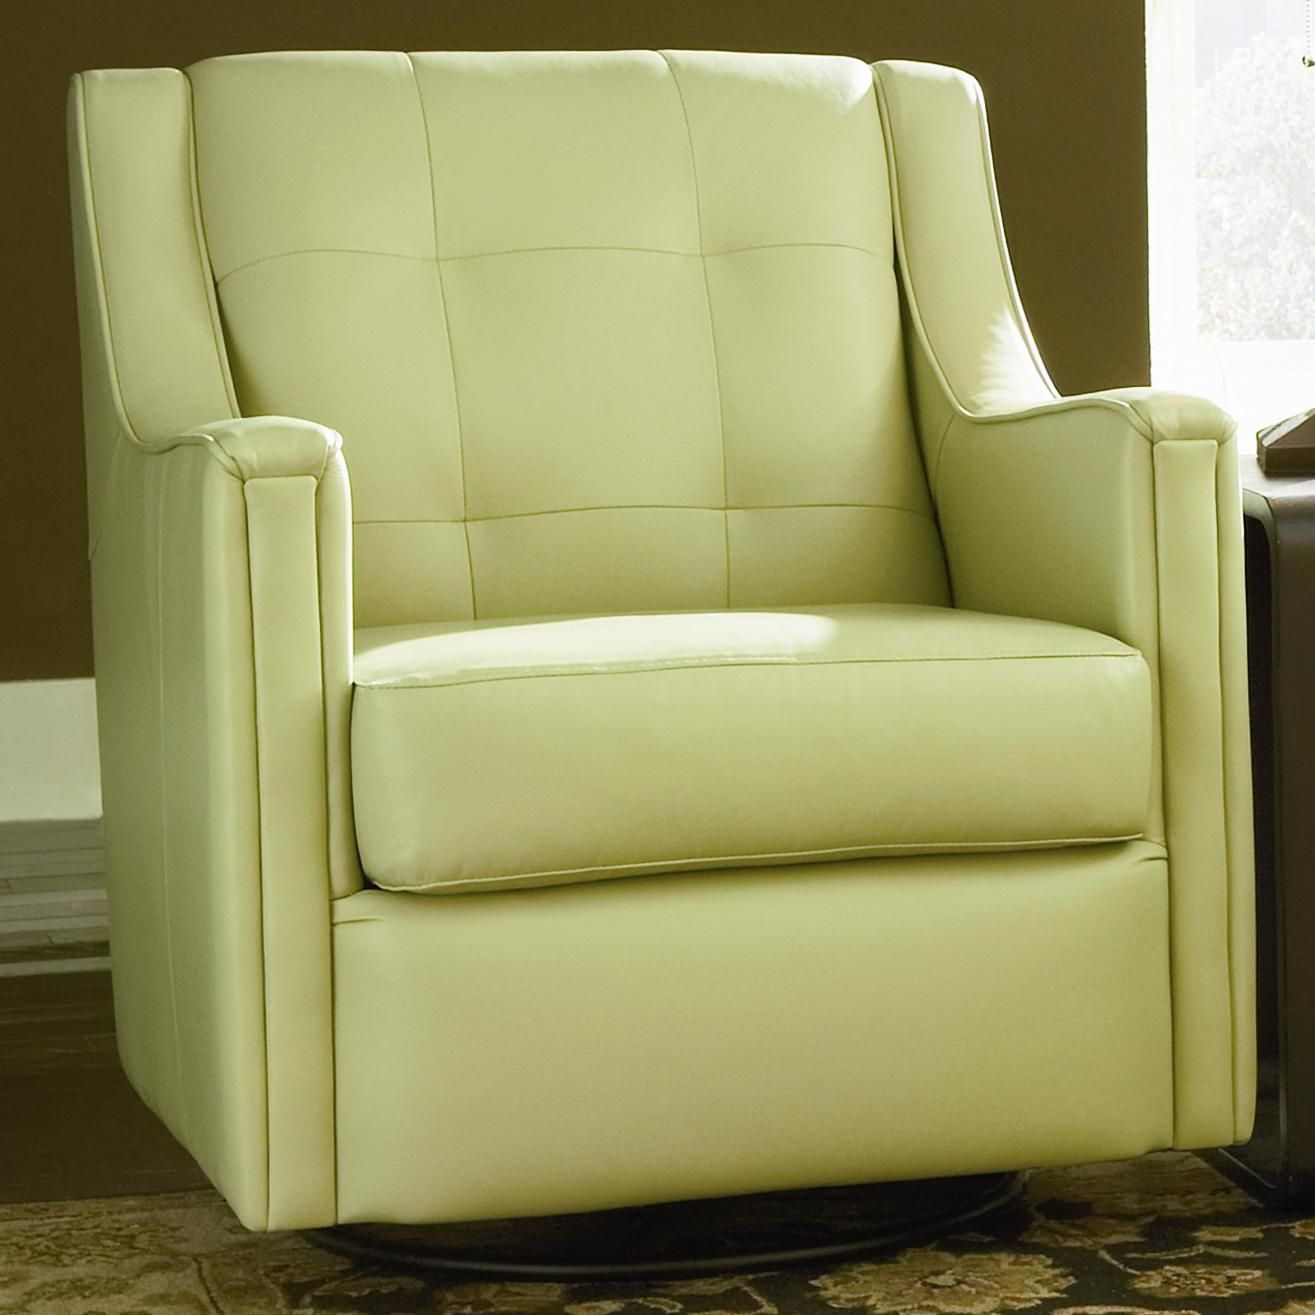 Swivel Tub Chairs Paxton Swivel Glider Tub Chair By Bradington Young Furniture Chairs Couches Swivel Glider Chair Glider Recliner Chair Furniture